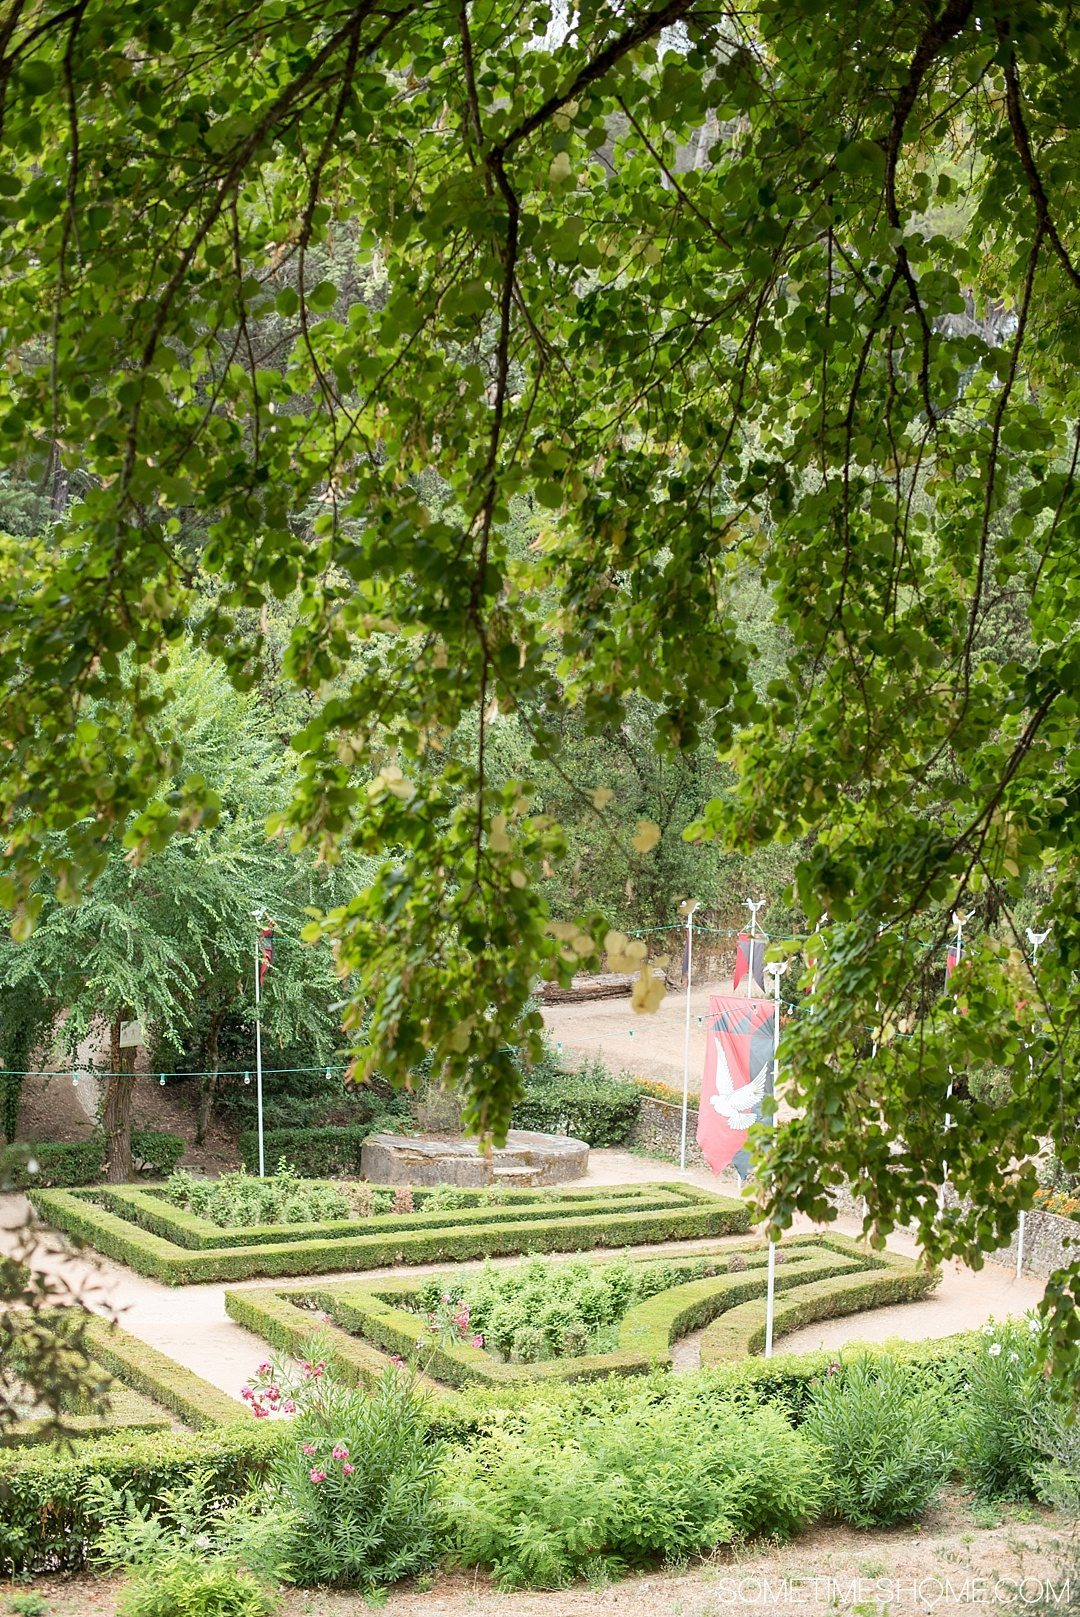 Amazing Day Trip from Lisbon to Tomar Portugal. Photos, tips and advice on Sometimes Home travel blog. Picture of the garden at Mata Nacional dos Sete Montes.